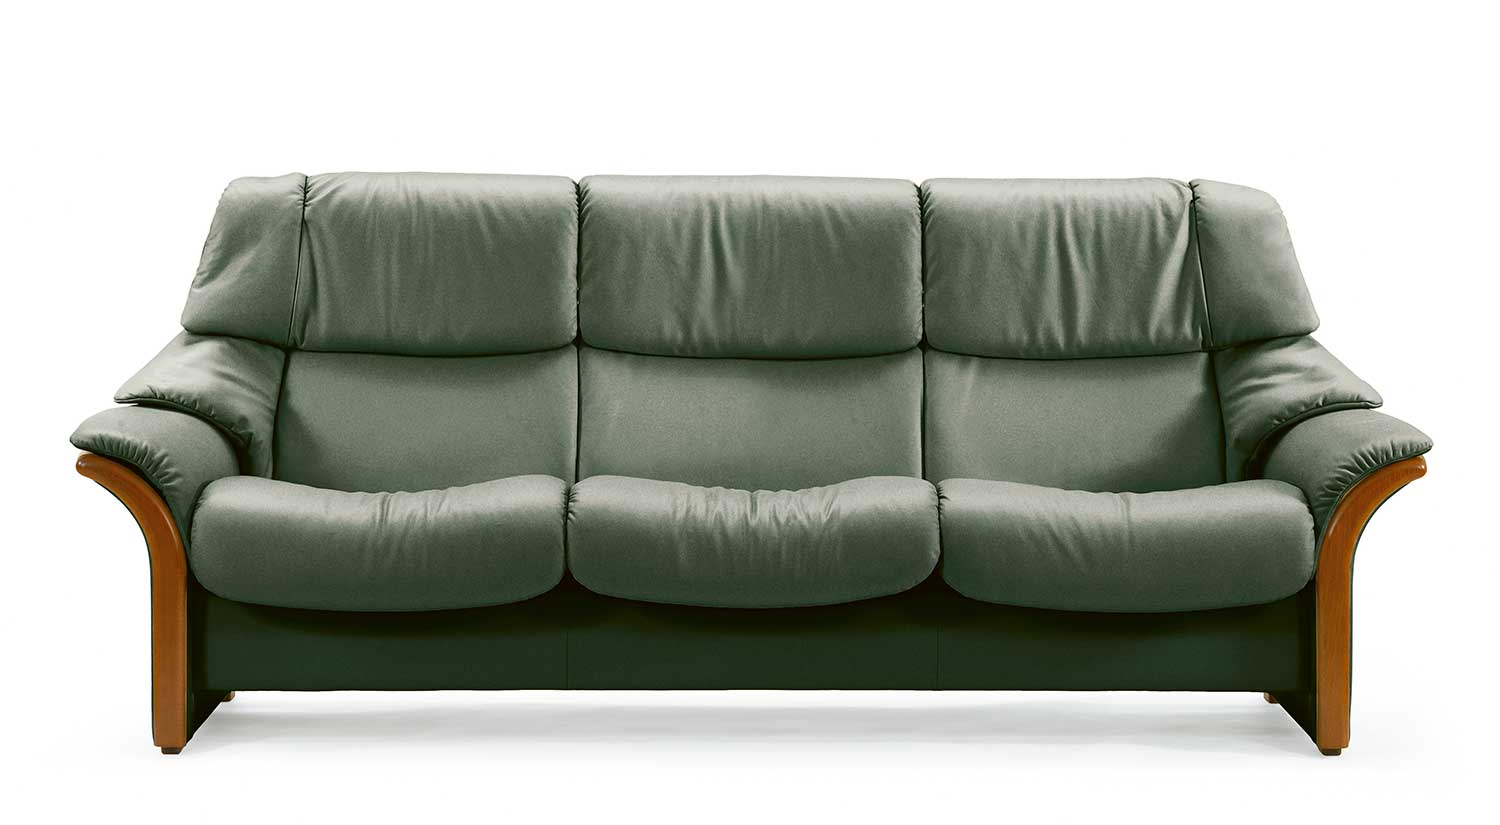 circle furniture eldorado stressless highback sofa. Black Bedroom Furniture Sets. Home Design Ideas